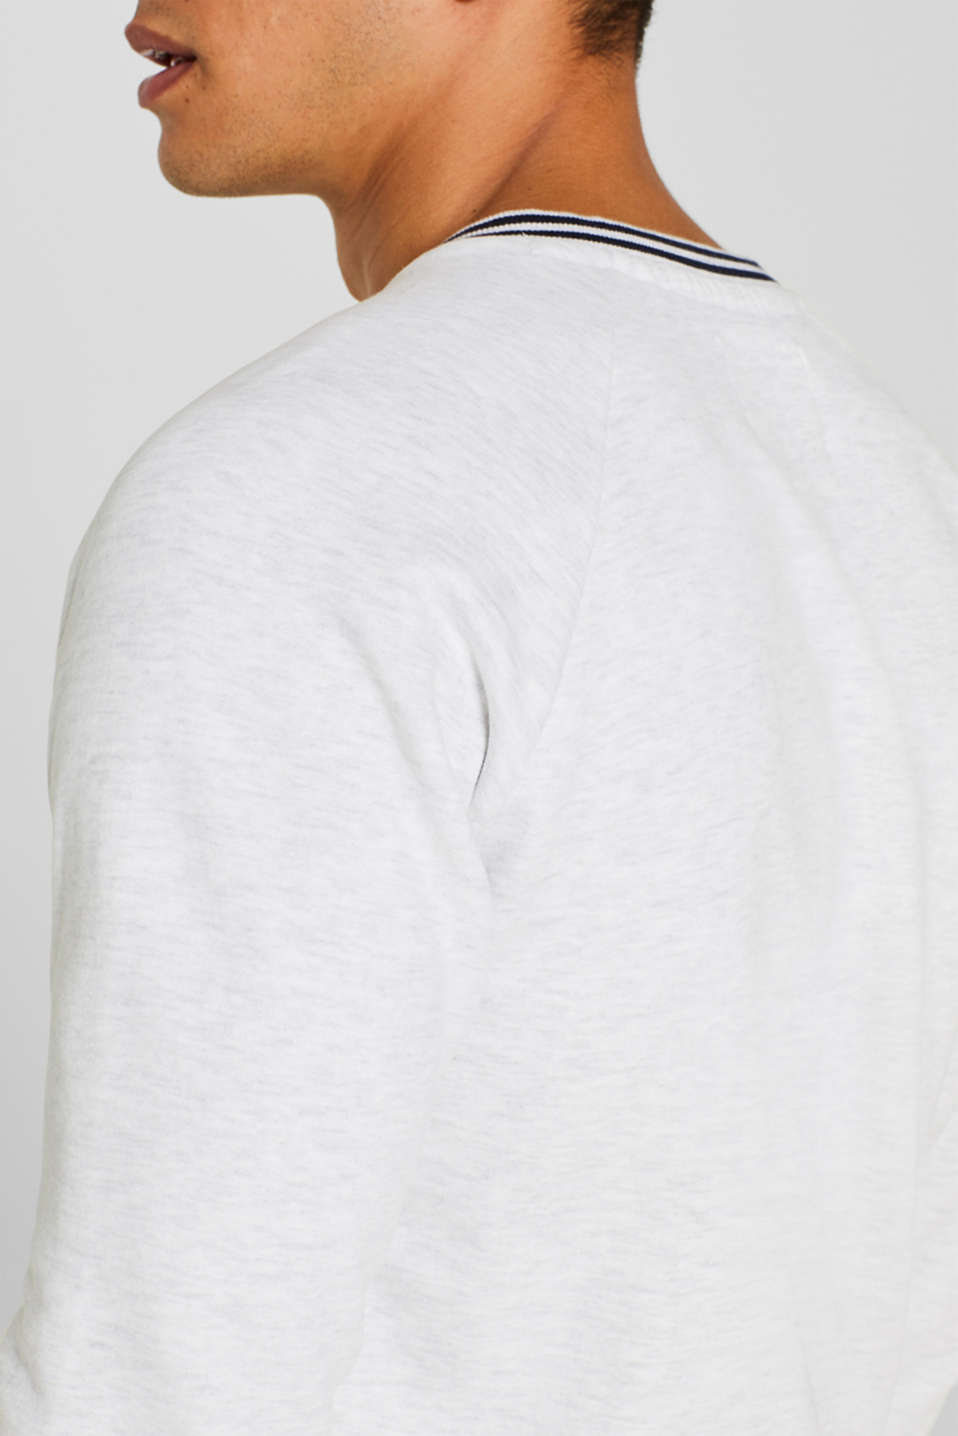 Sweatshirt in 100% cotton, OFF WHITE, detail image number 5